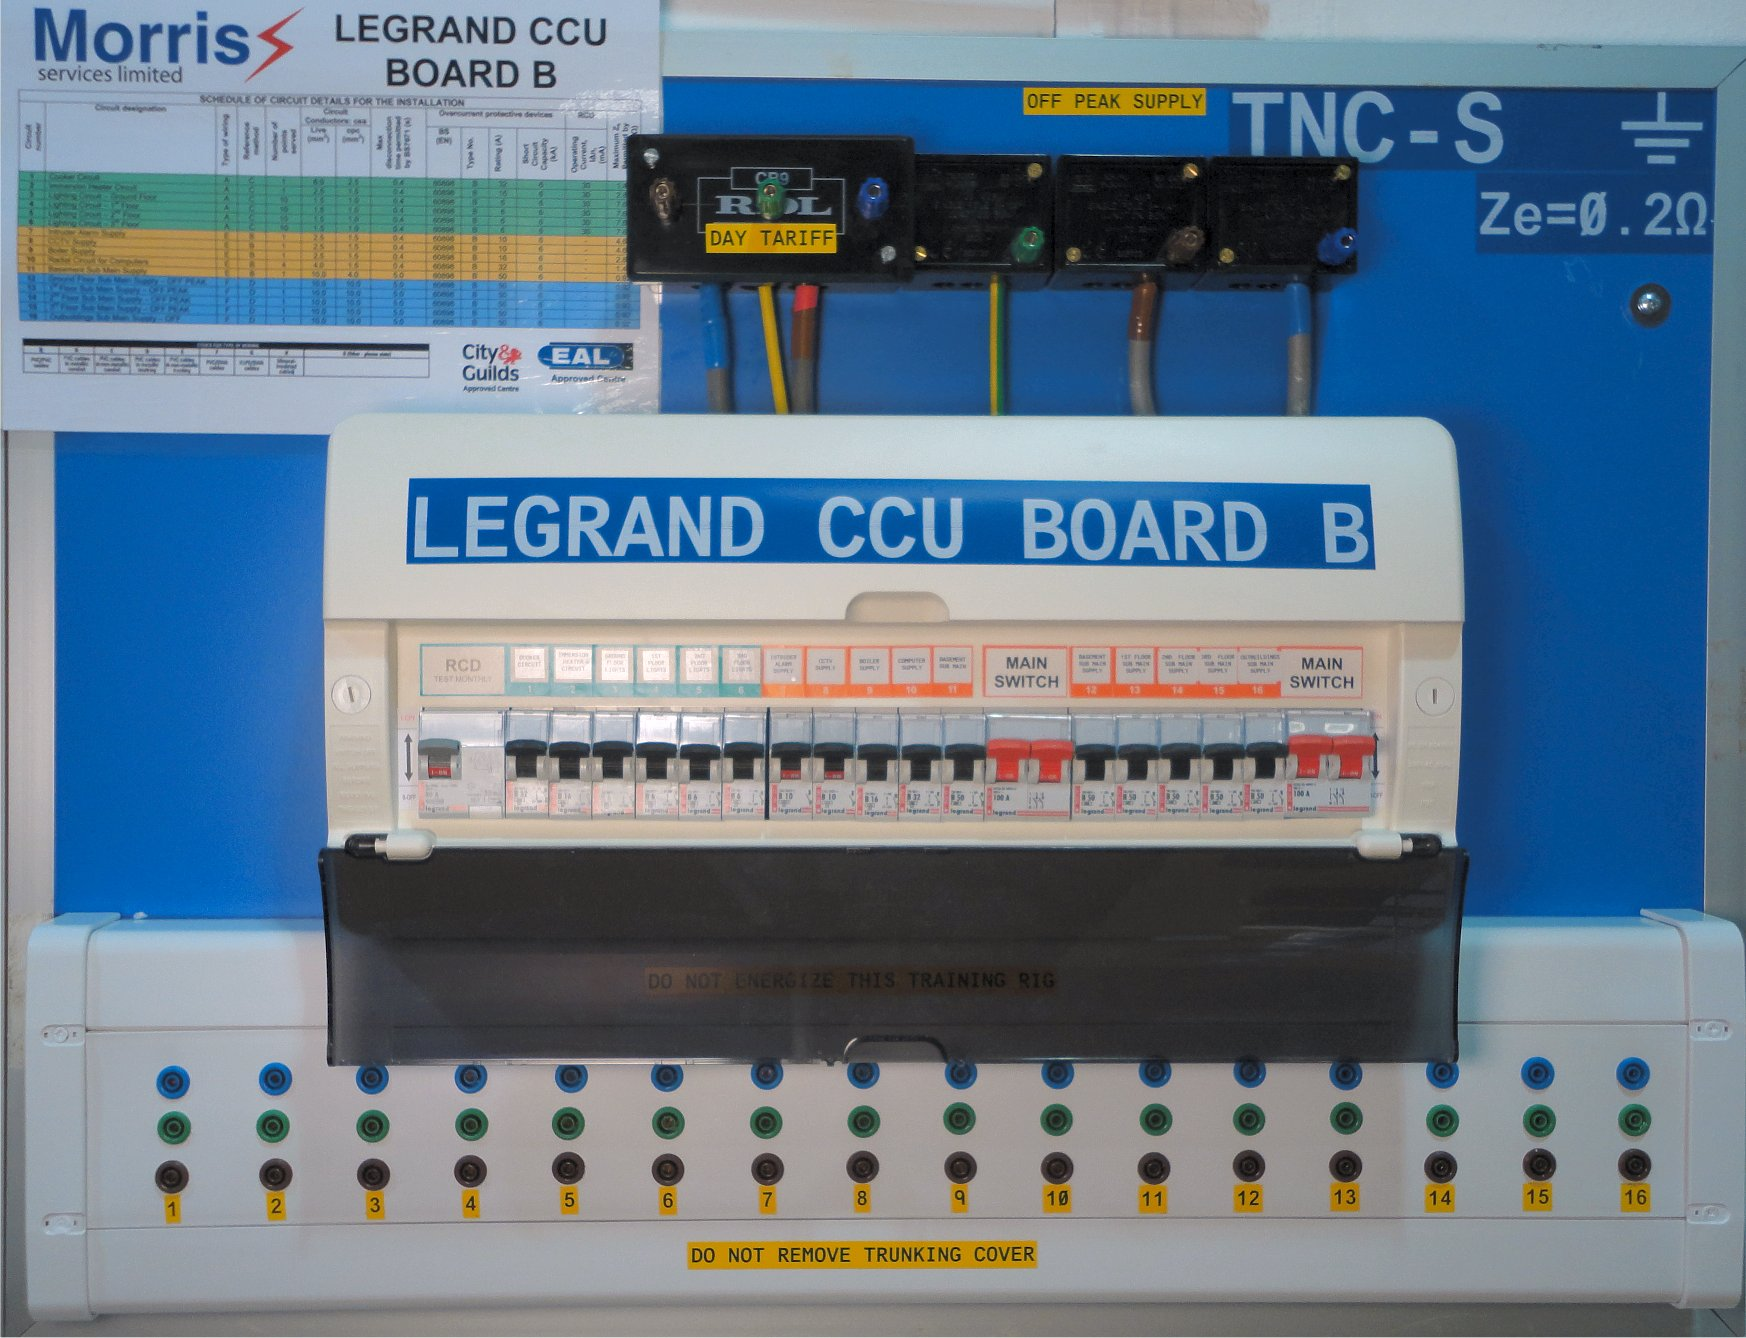 Legrand CCU Board B is used at Morris Services Limited to provide practical training and verification of earth fault loop impedance of final circuits and R1 + R2 measurred valueds on the City & Guilds 2394-01 Level 3 Initial Verification Course and the new EAL 7695 Level 3 Electrical Qualiifed Supervisors course.